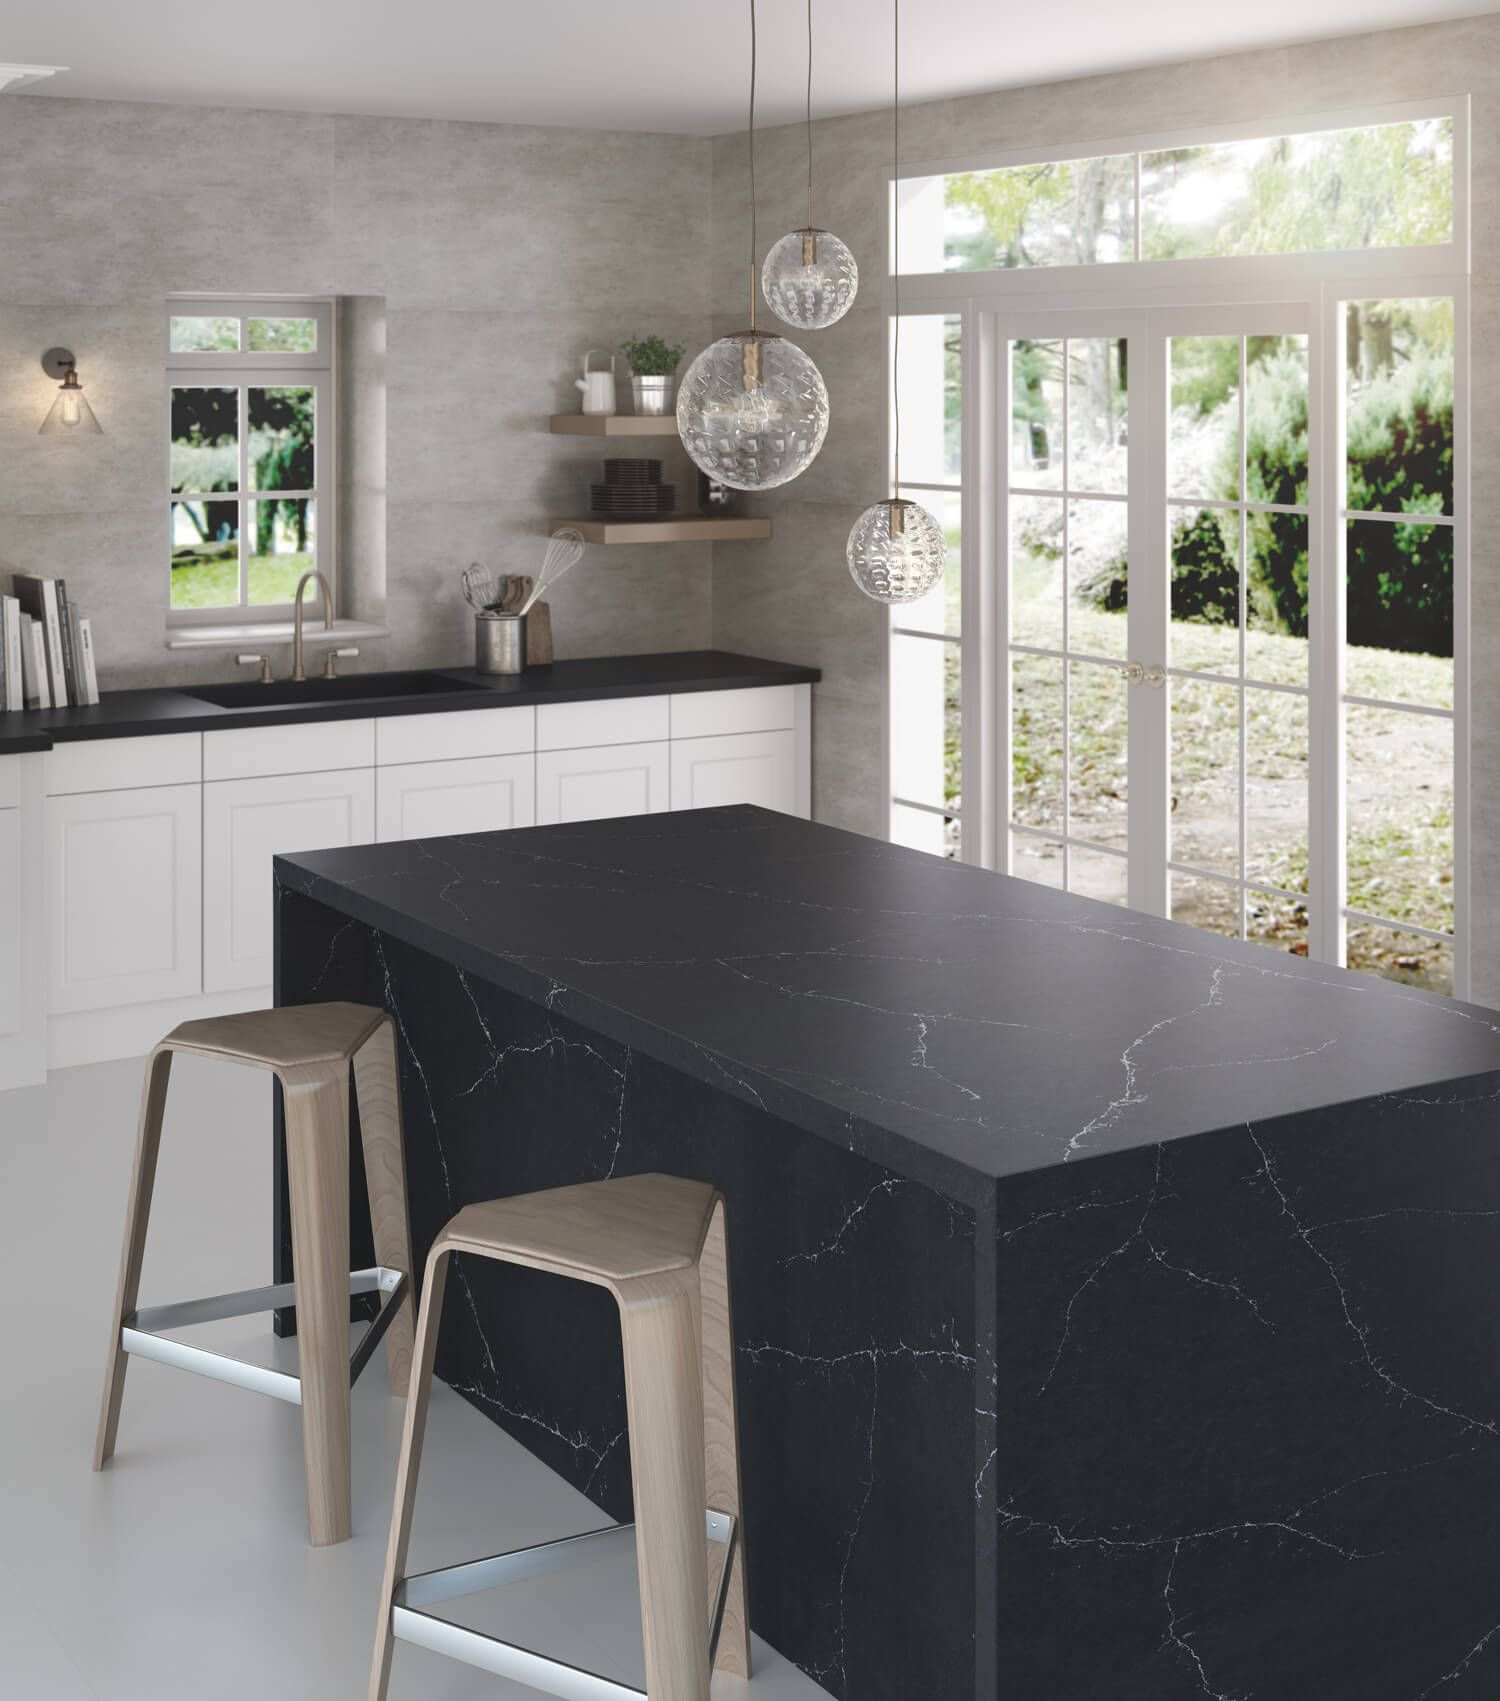 Otto Küche Spülbecken Silestone Eternal Kitchen Pinterest Minimalist Kitchen